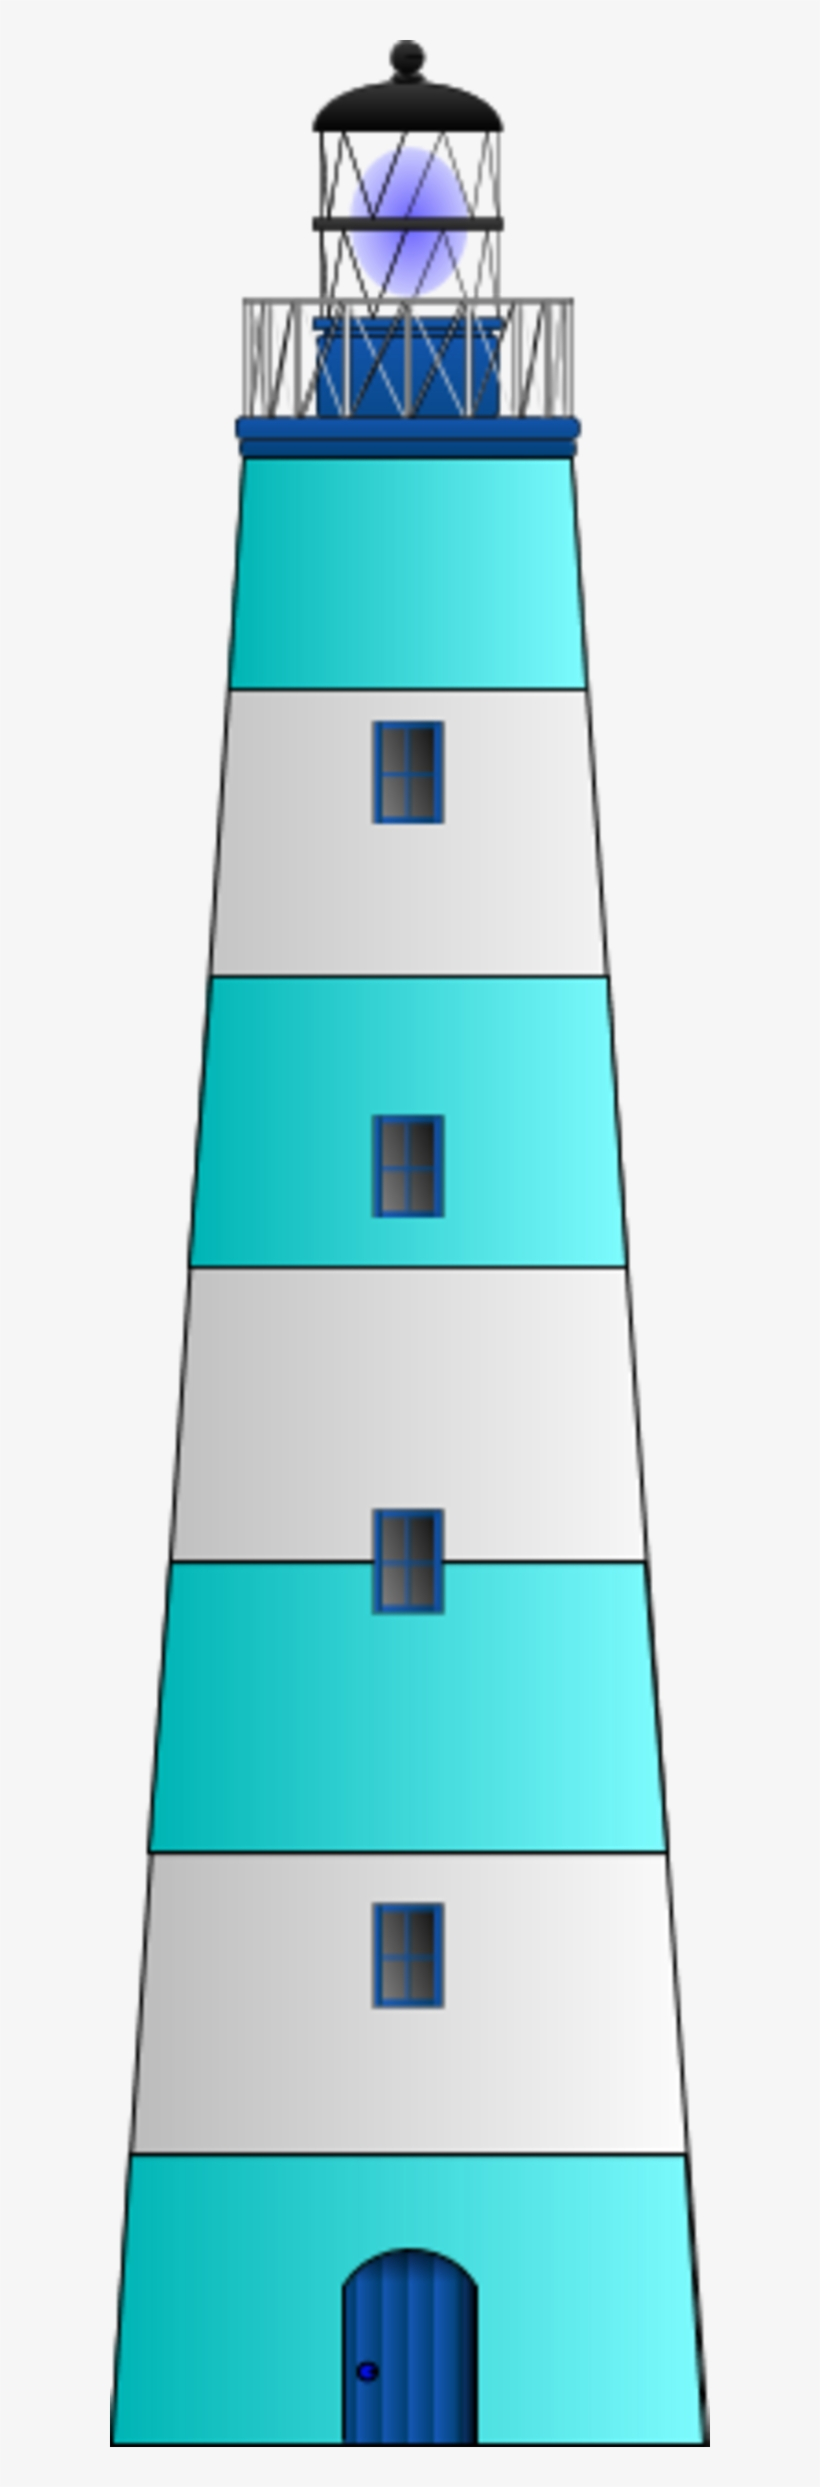 Lighthouse Clip Art Png Transparent PNG - 441x701 - Free Download on NicePNG